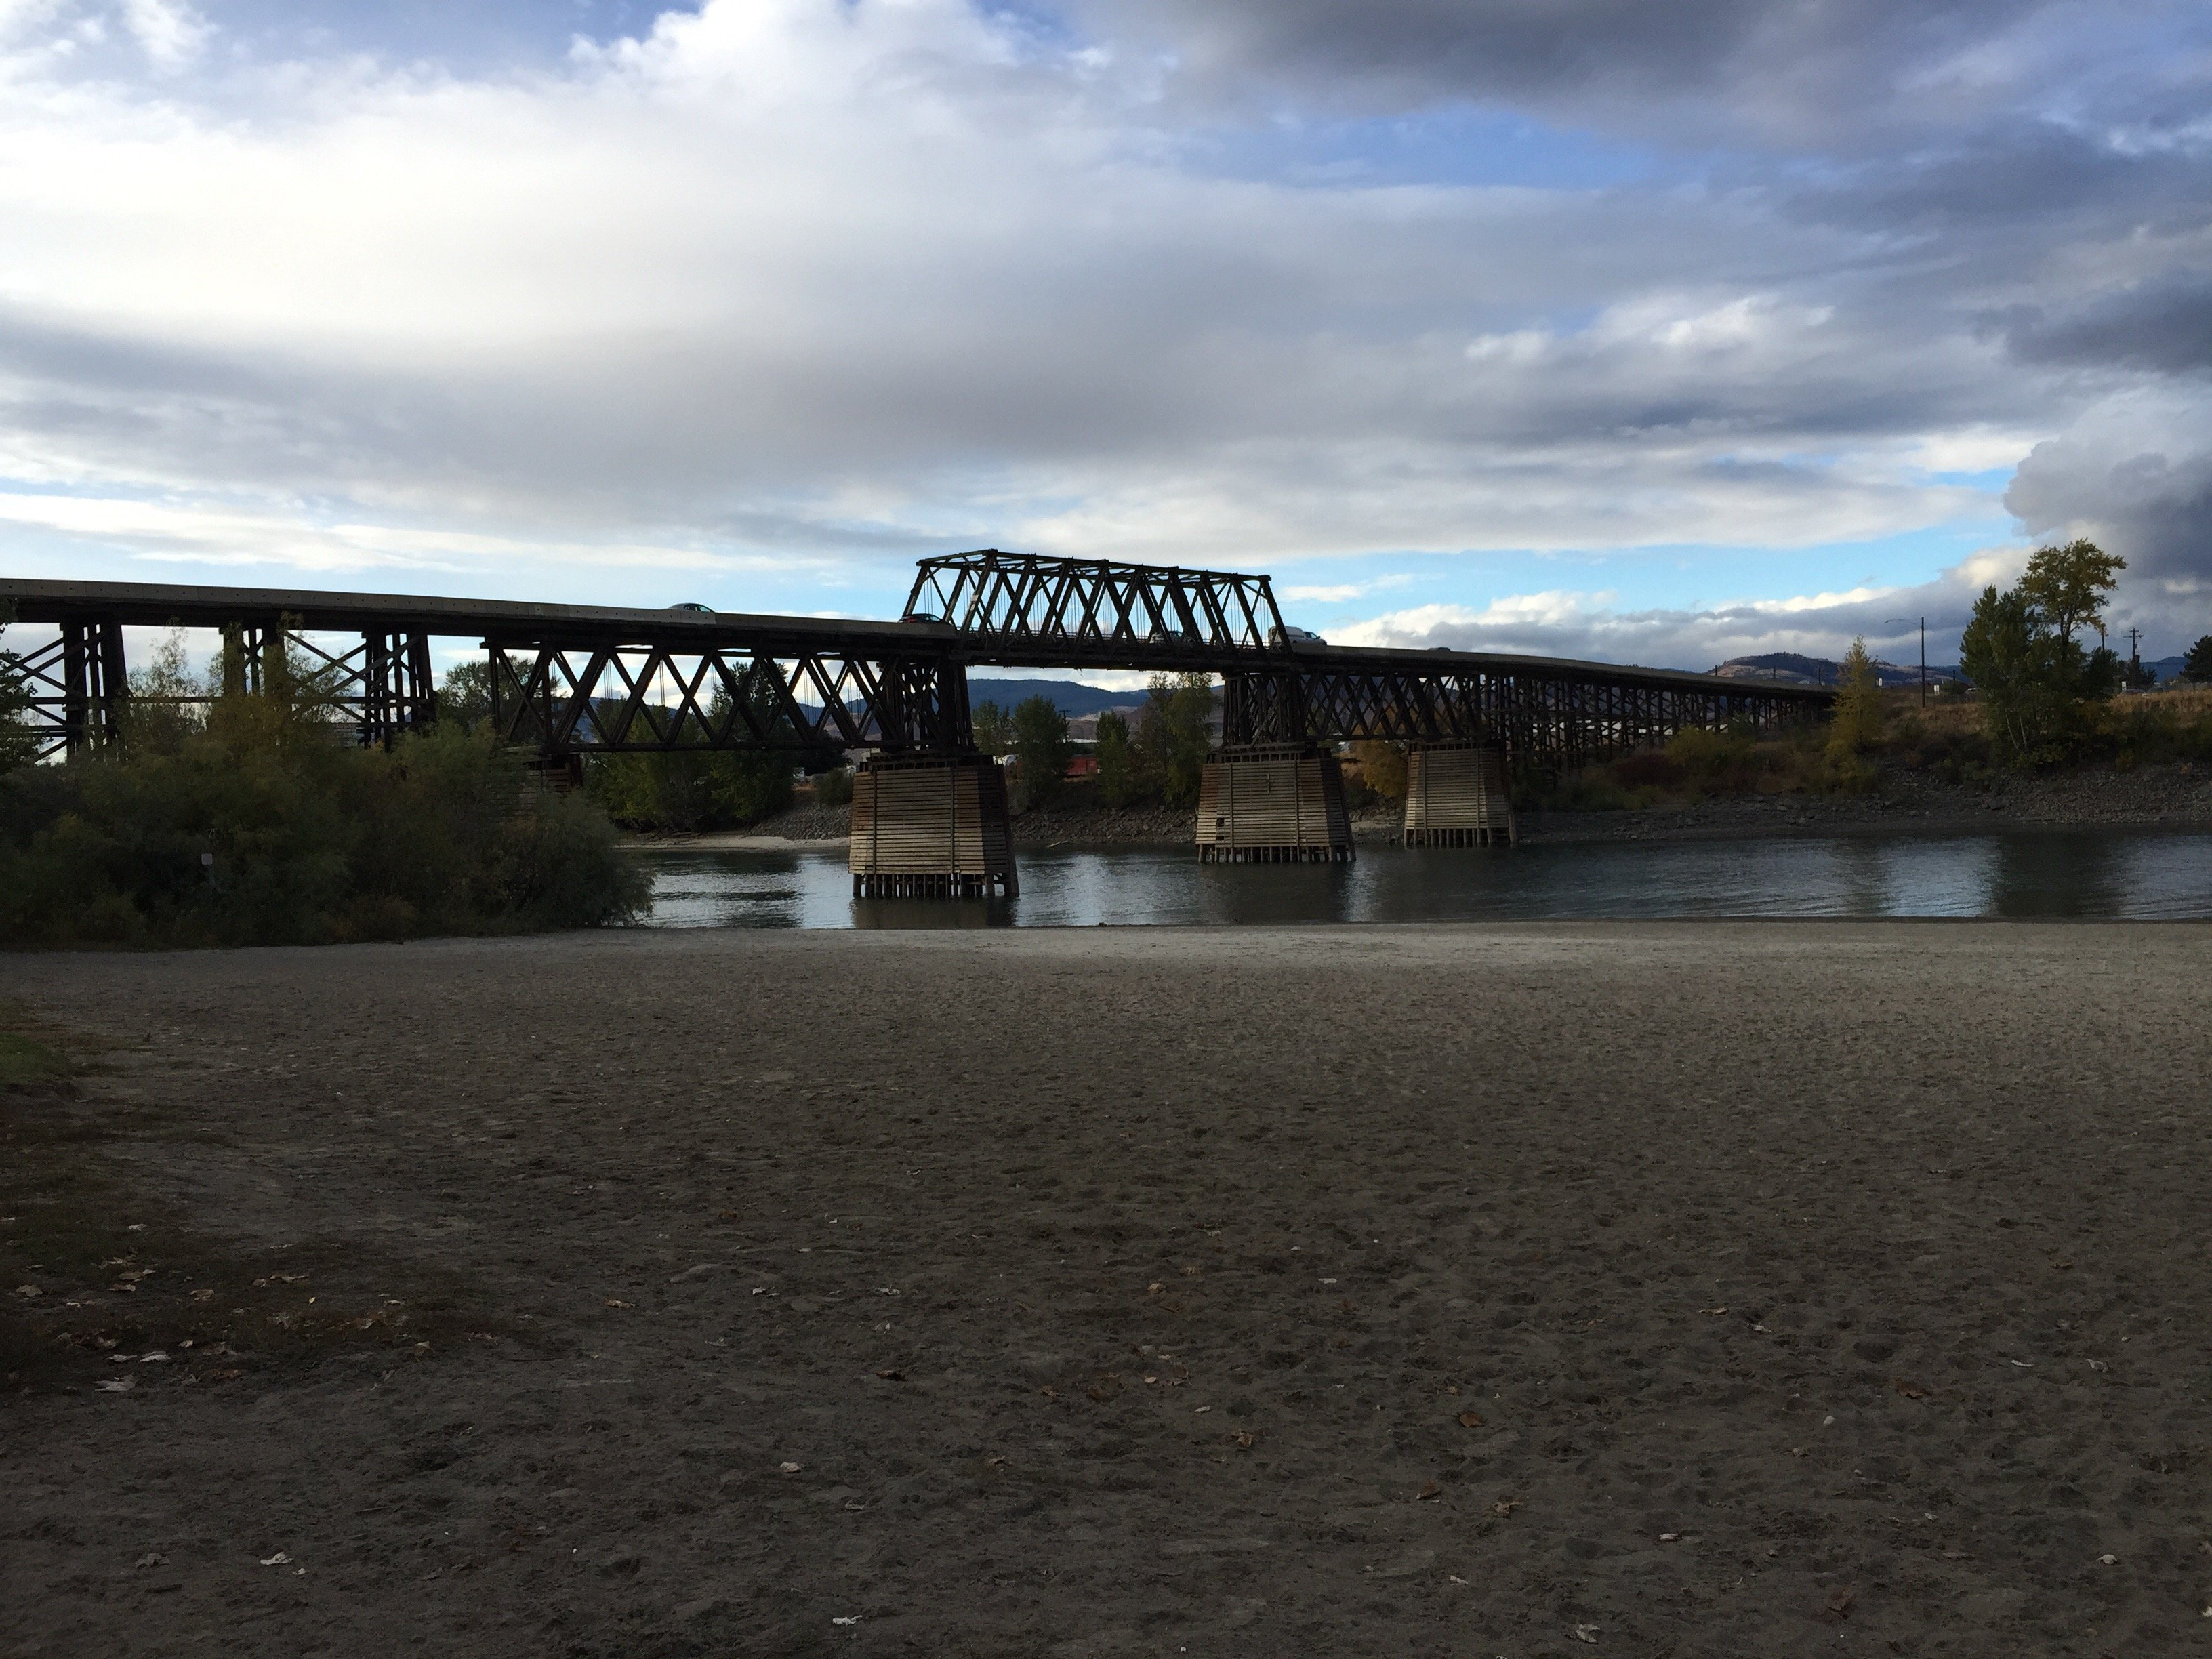 The rail bridge at Kamloops over the Thompson River